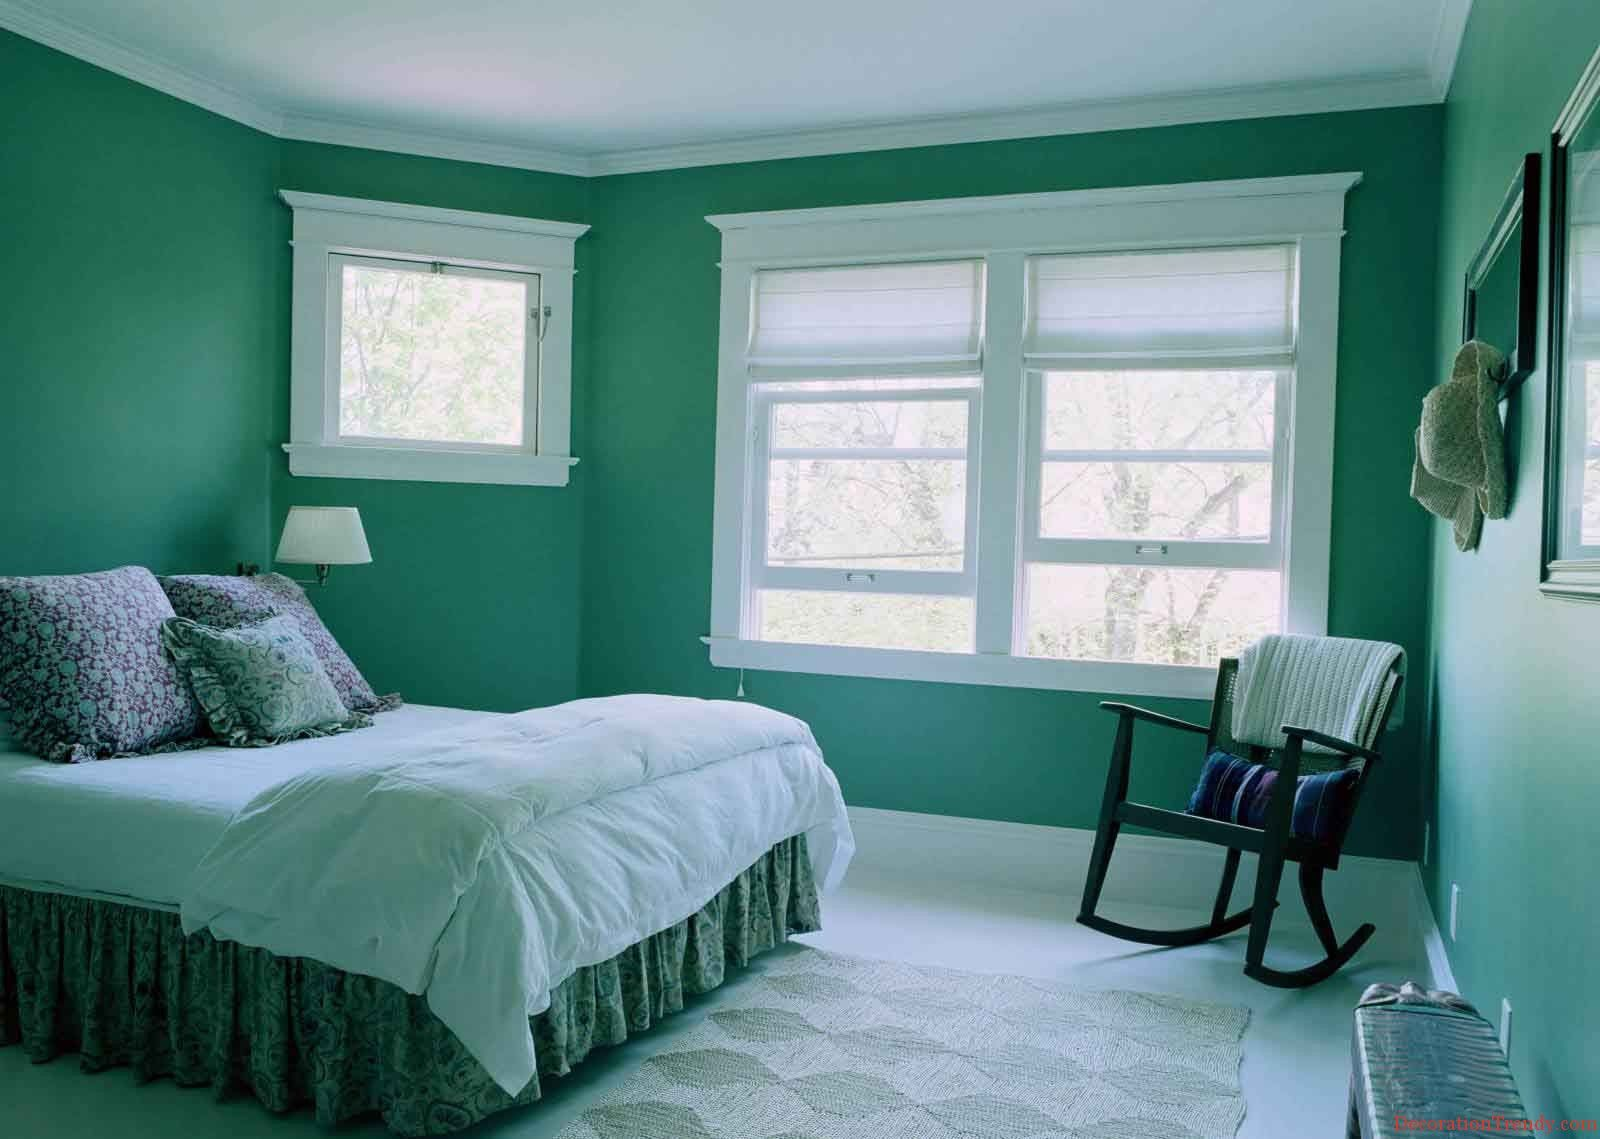 Green room color ideas - Wall Color Combination Design Ideas And Photos Get Creative Wall Painting Ideas Designs For